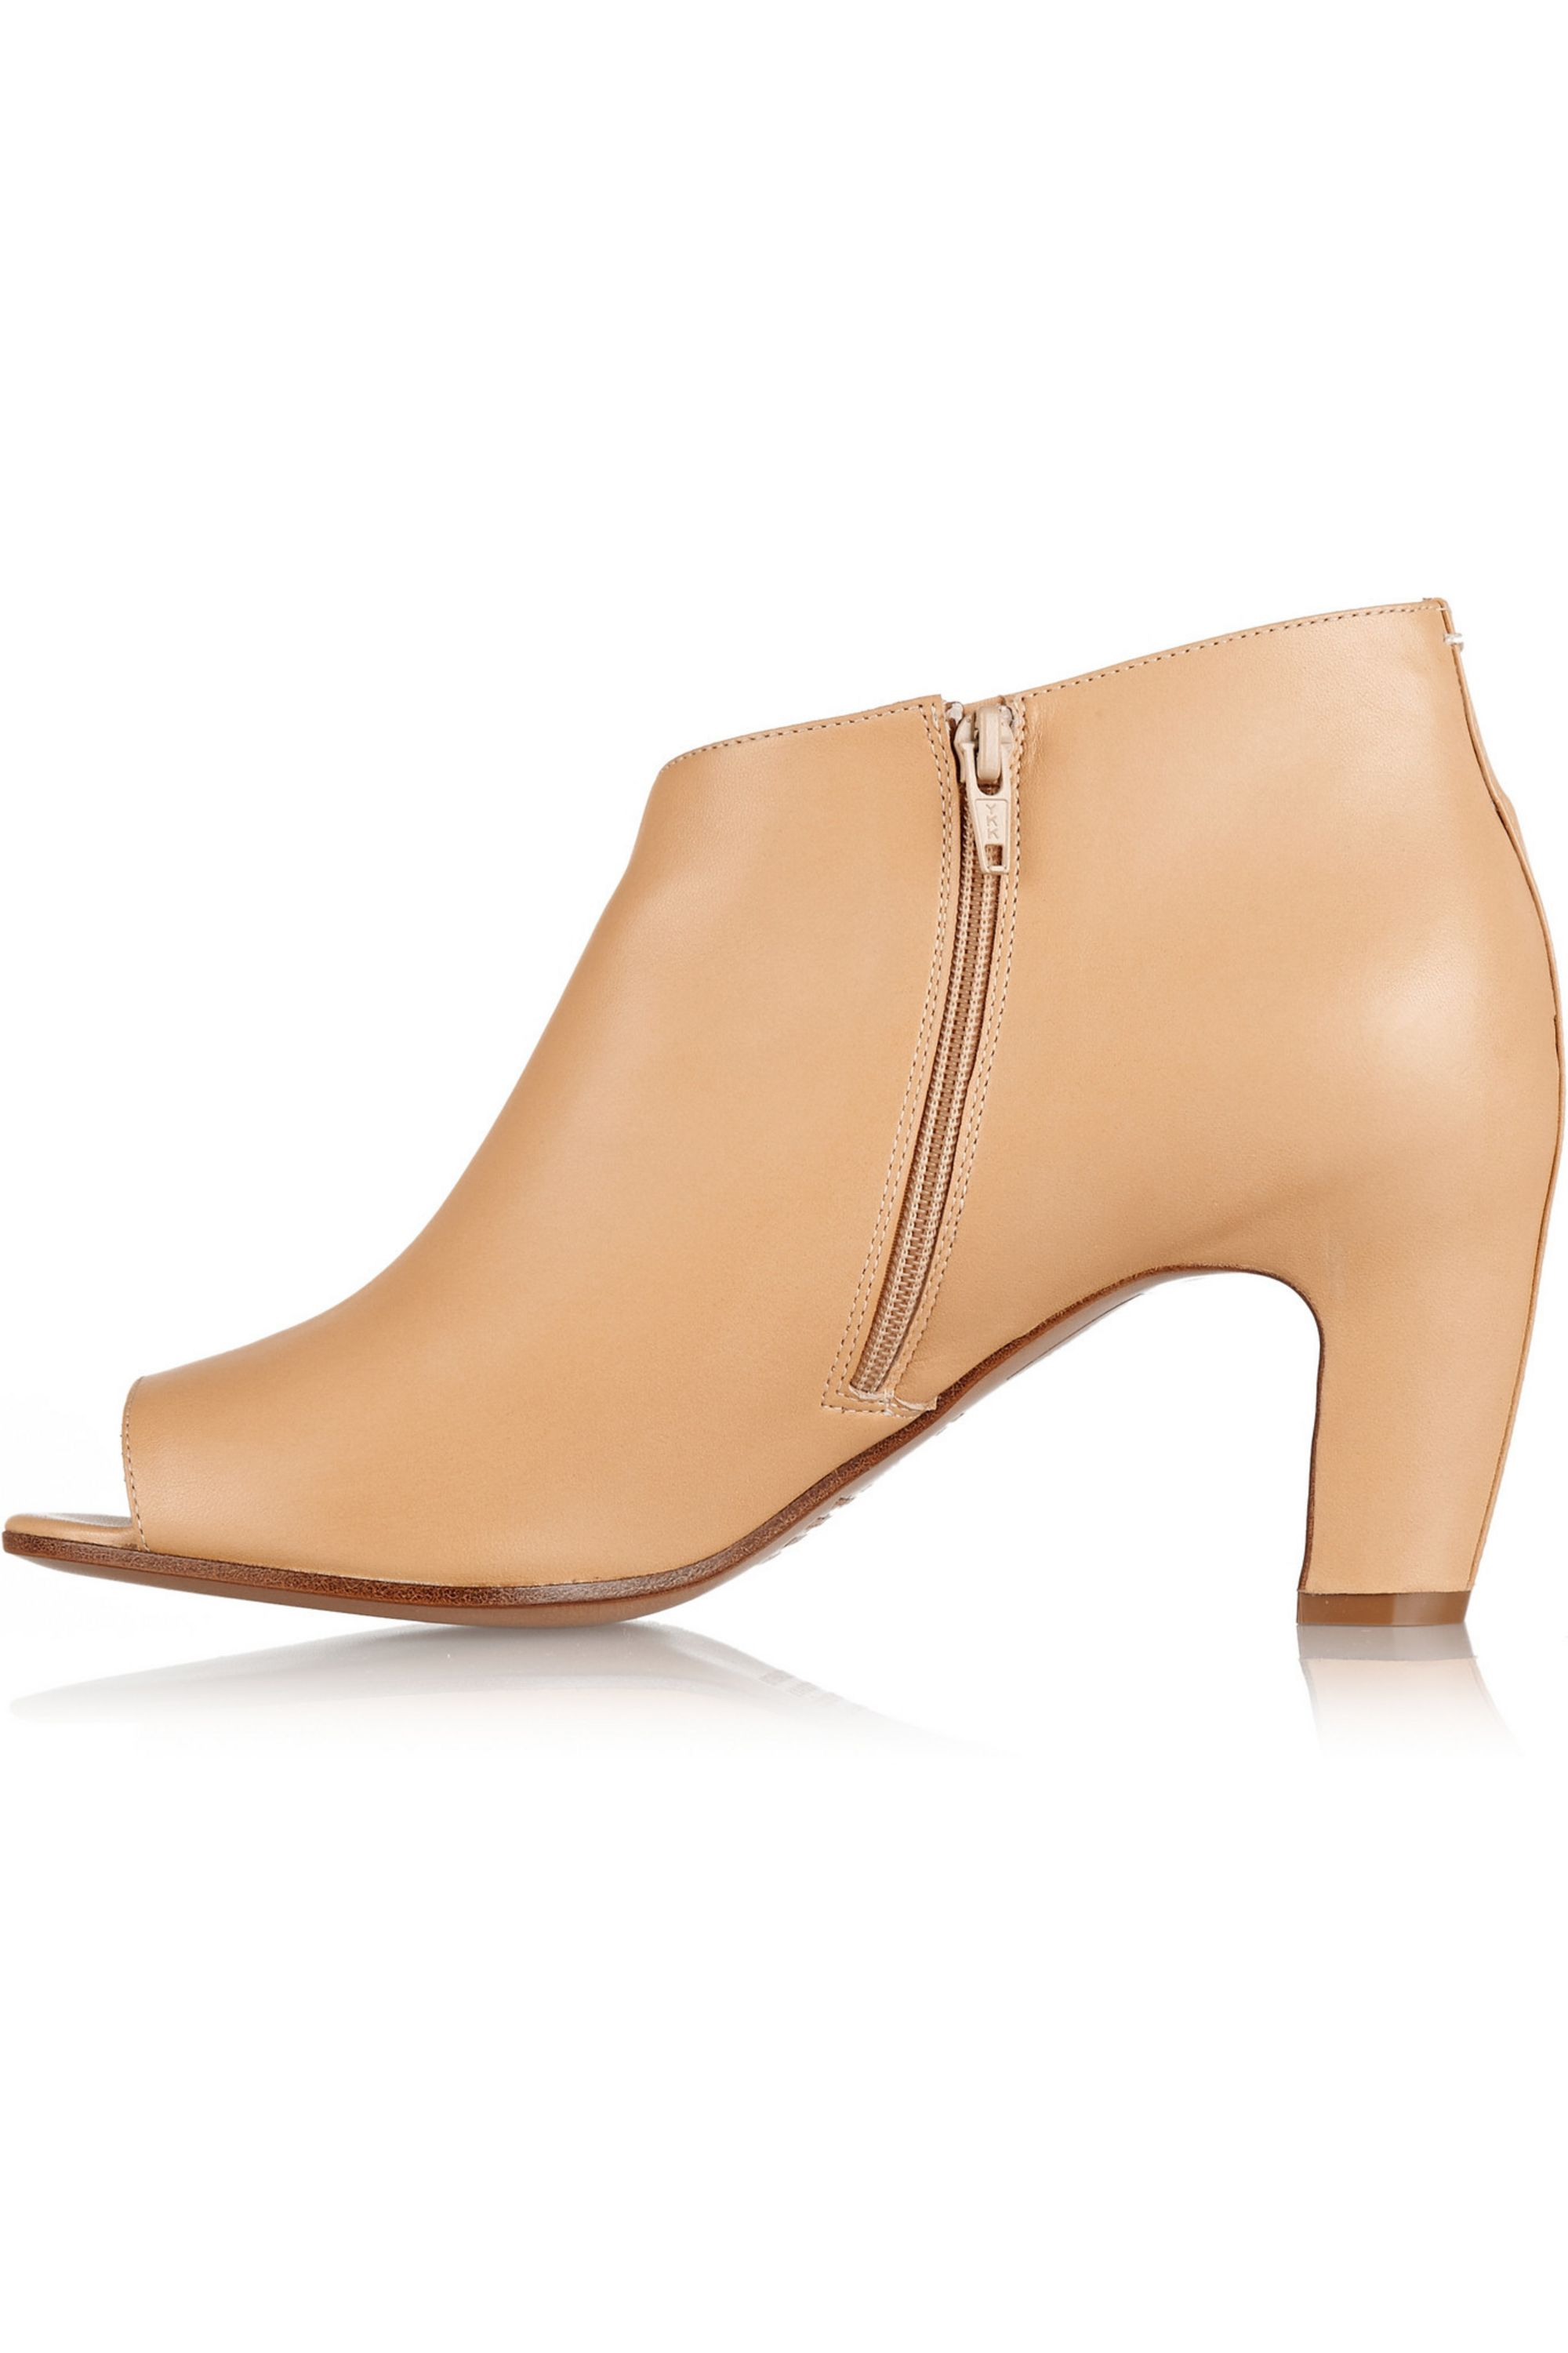 Beige Leather peep toe ankle boots